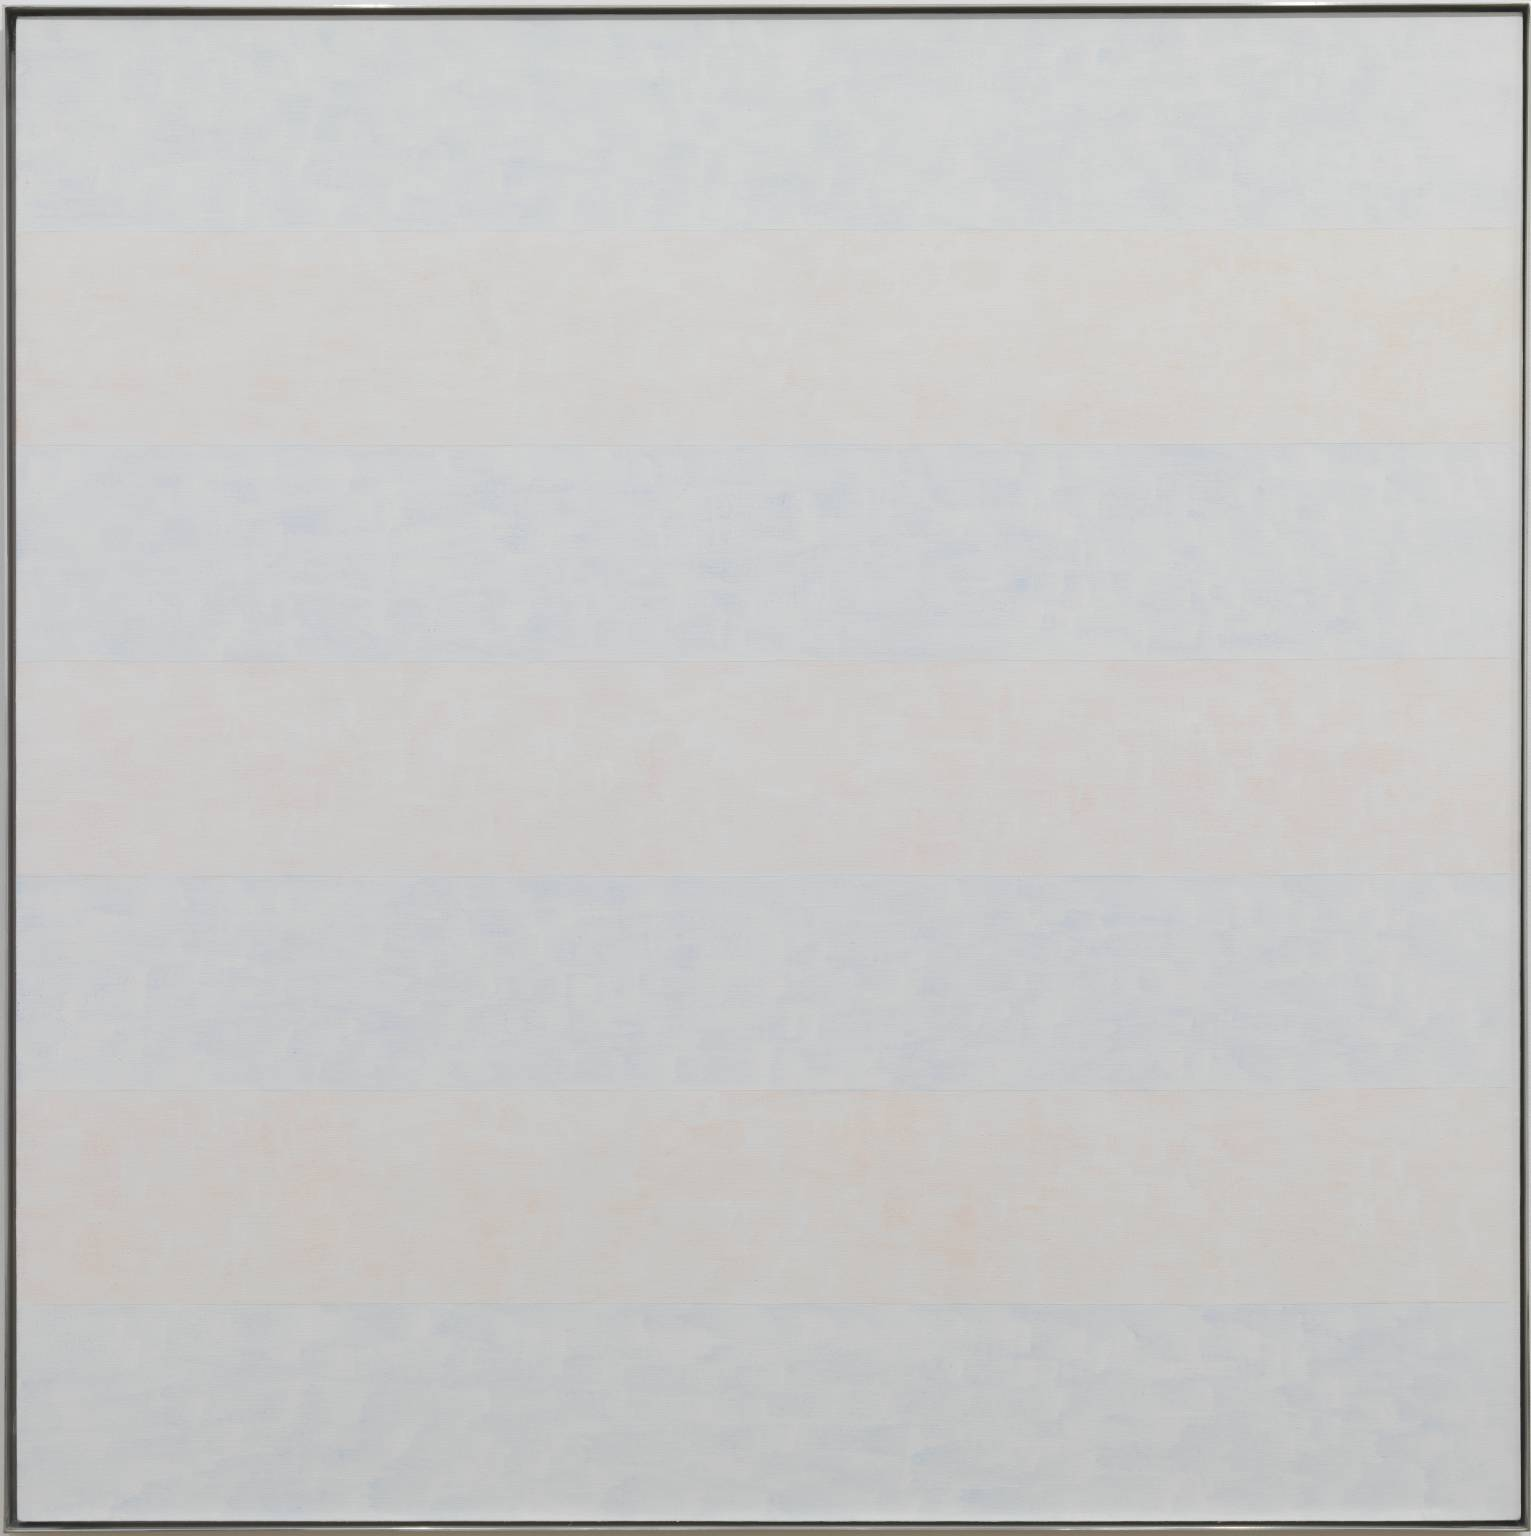 Untitled #10 1995 by Agnes Martin 1912-2004